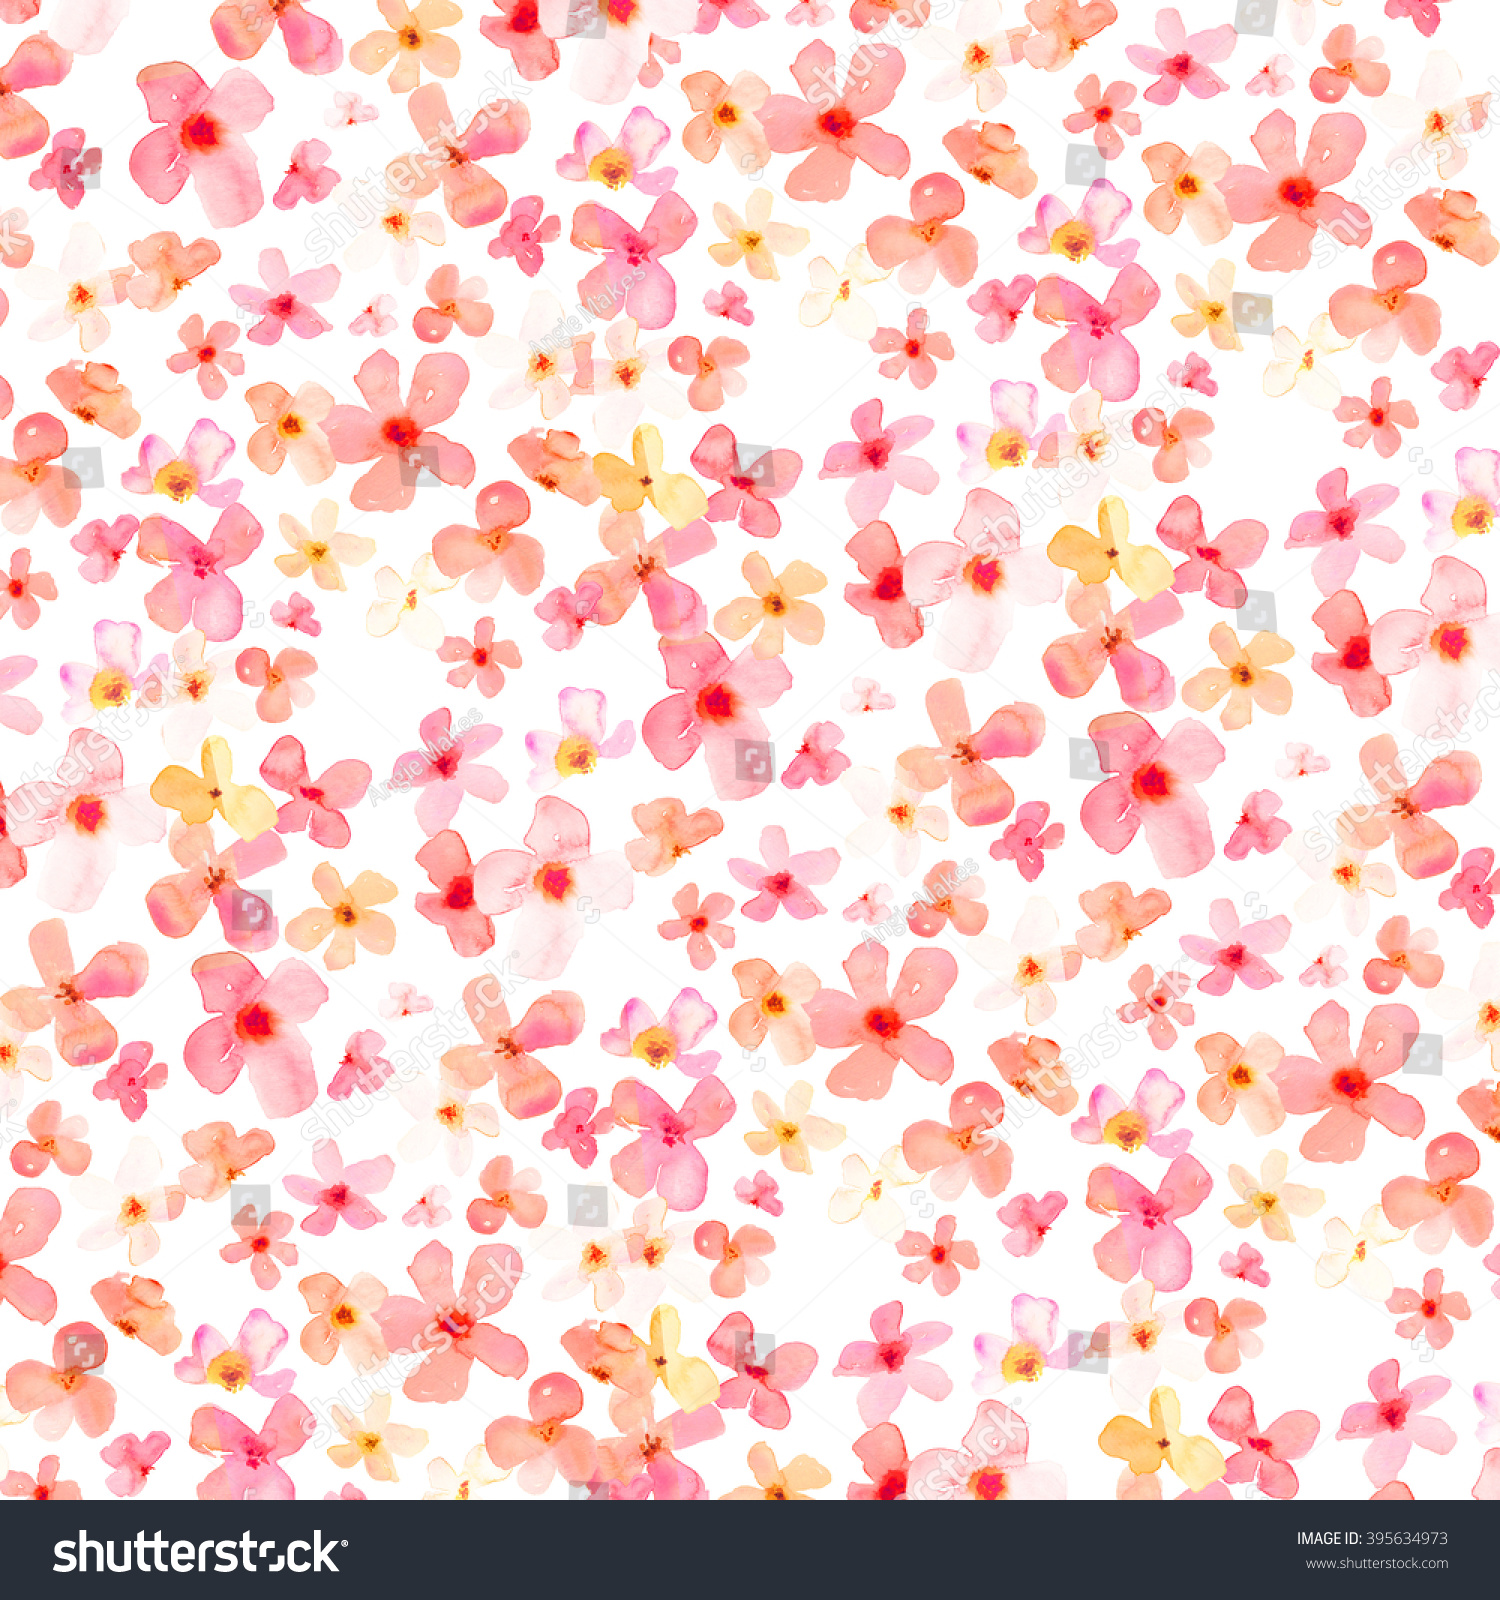 Cute spring flower background bright pink stock illustration cute spring flower background bright pink stock illustration 395634973 shutterstock mightylinksfo